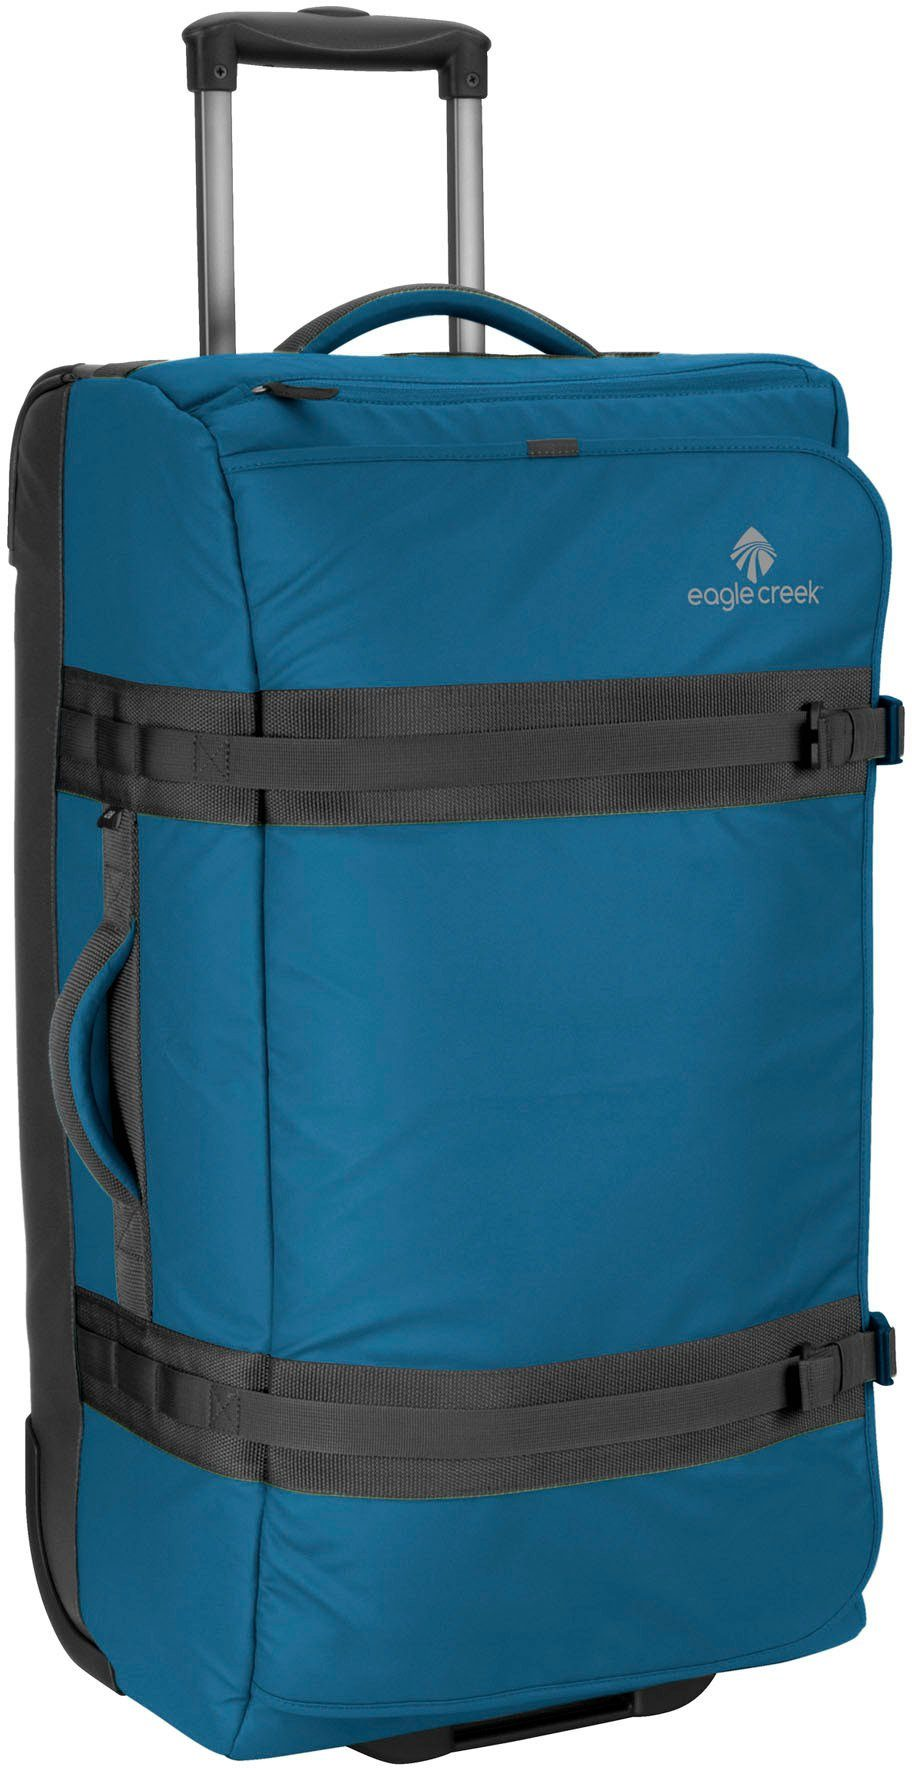 Eagle Creek Sport- und Freizeittasche »No Matter What 28 Flatbed Duffel Bag«